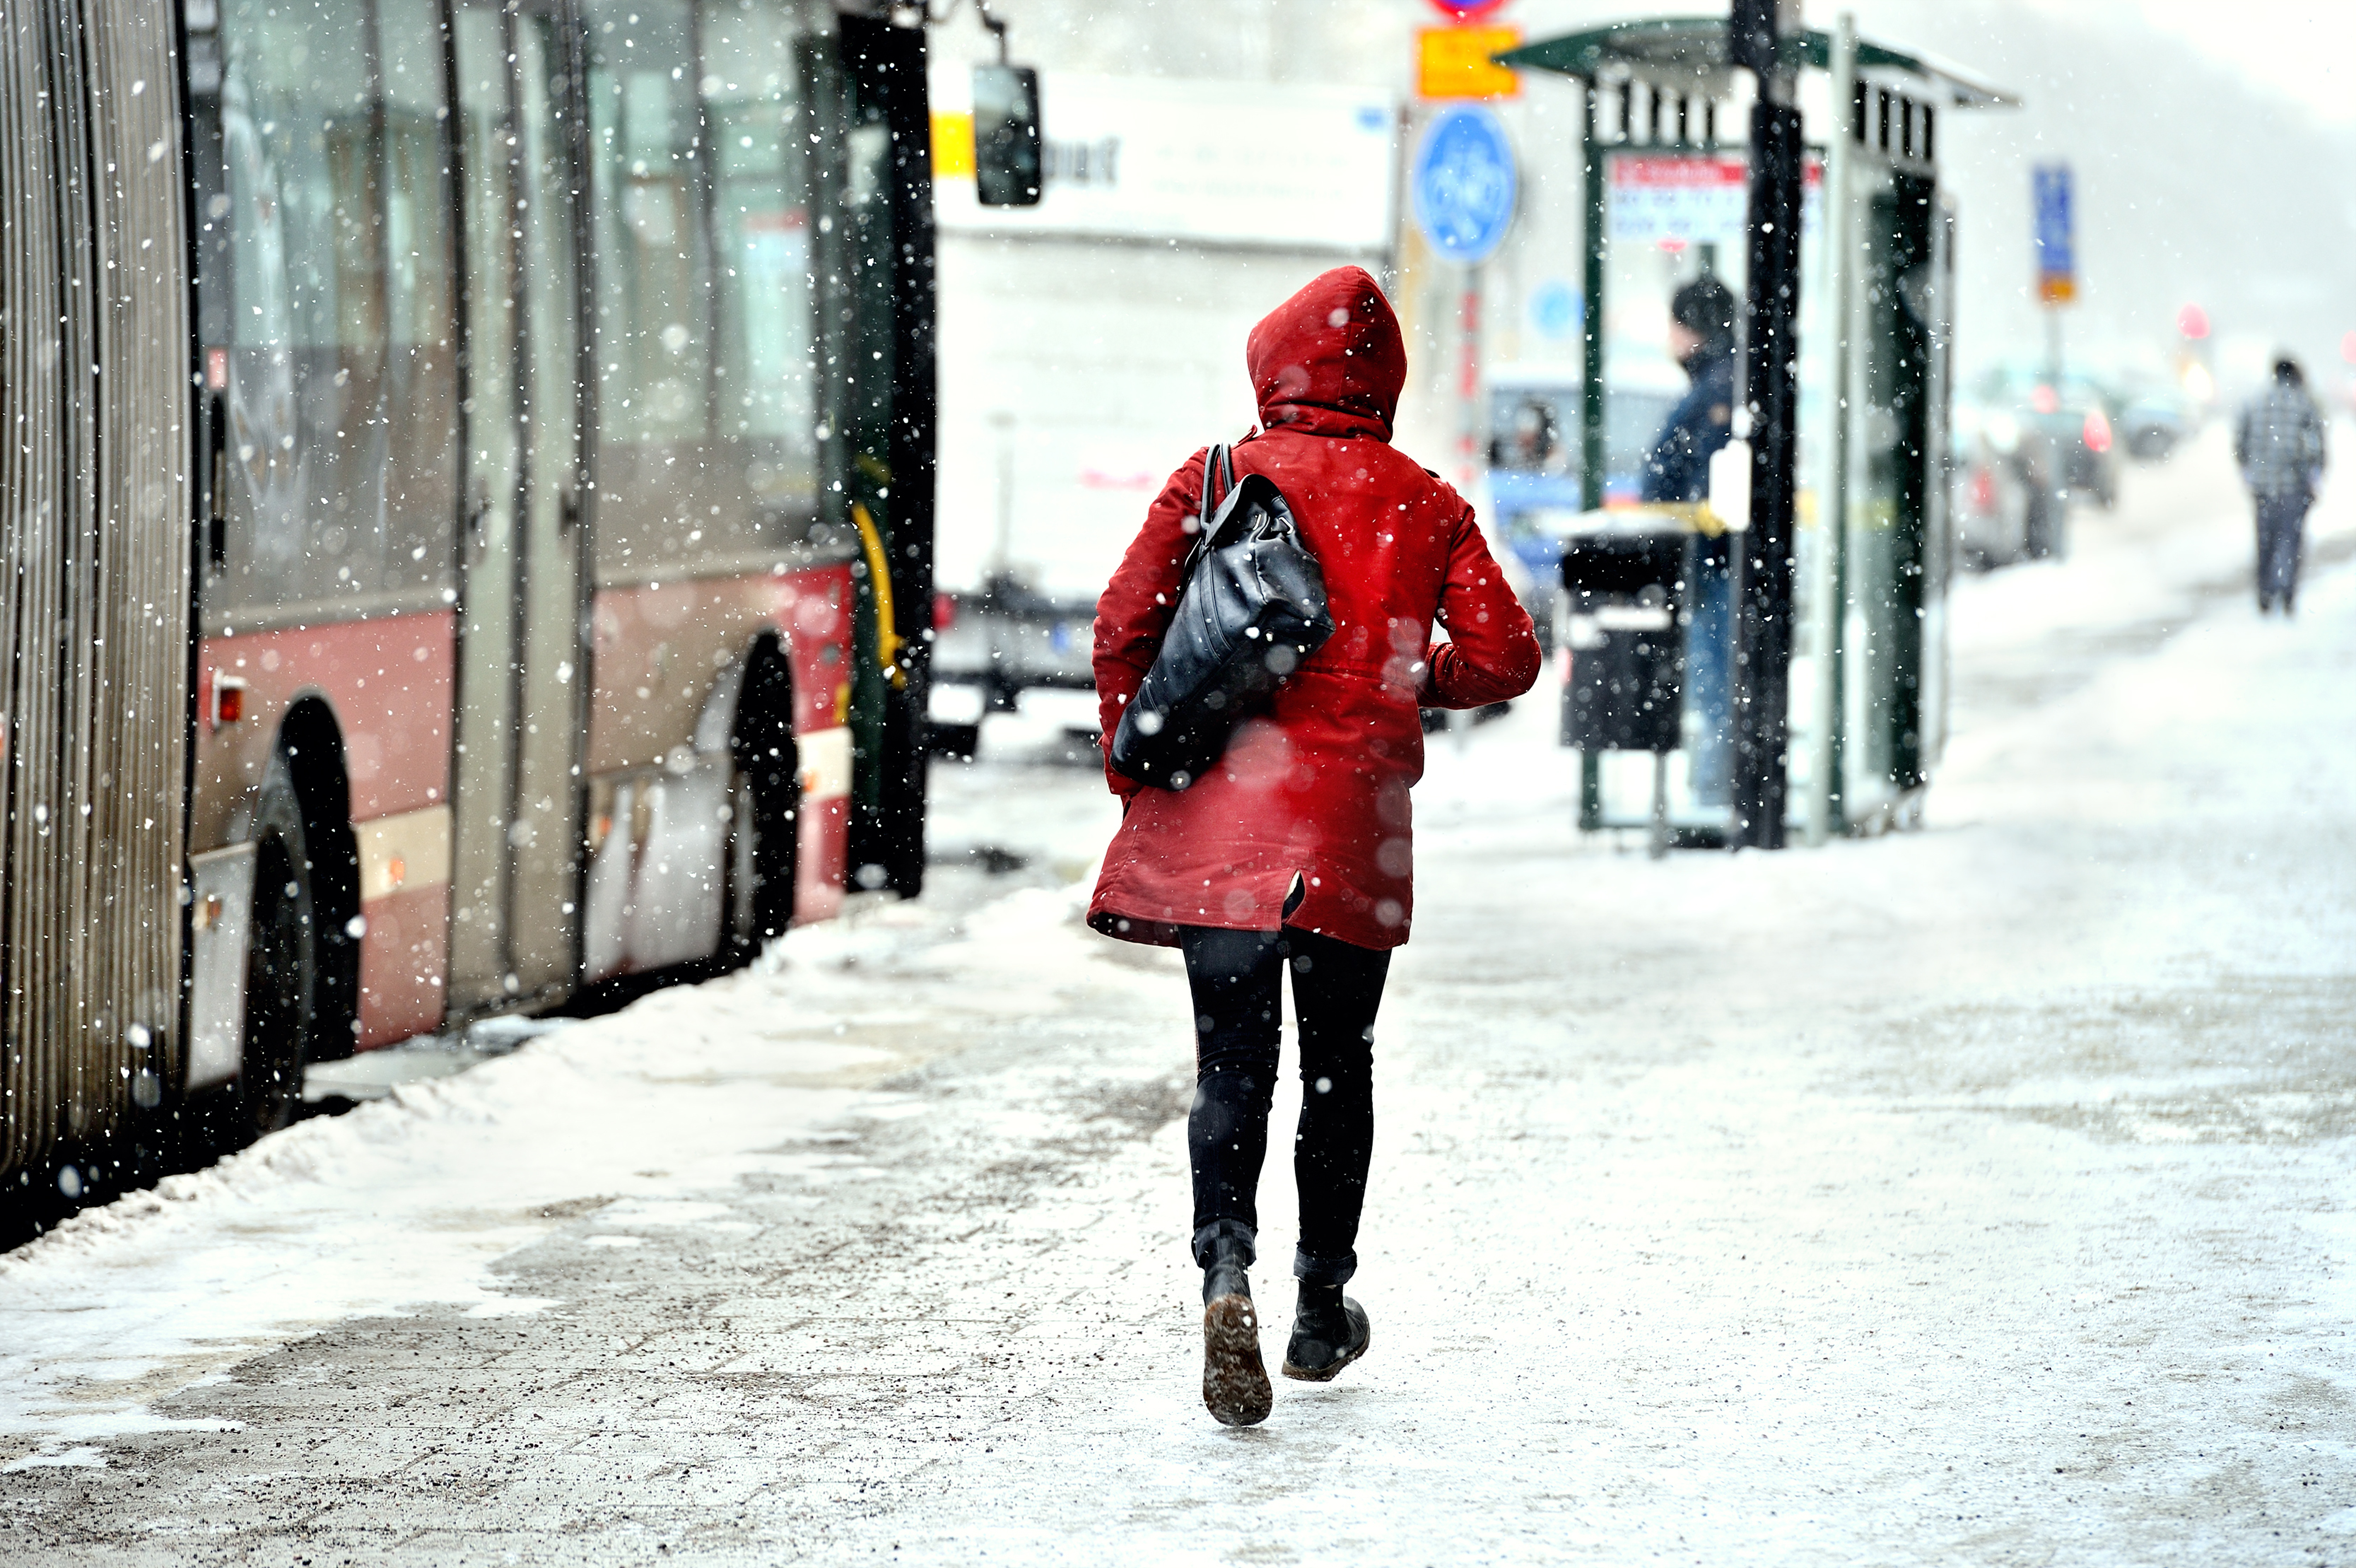 Surviving the Best from the East Getting Around in the Snow travel snowing amber warnings cold ice frost driving safely safe walking